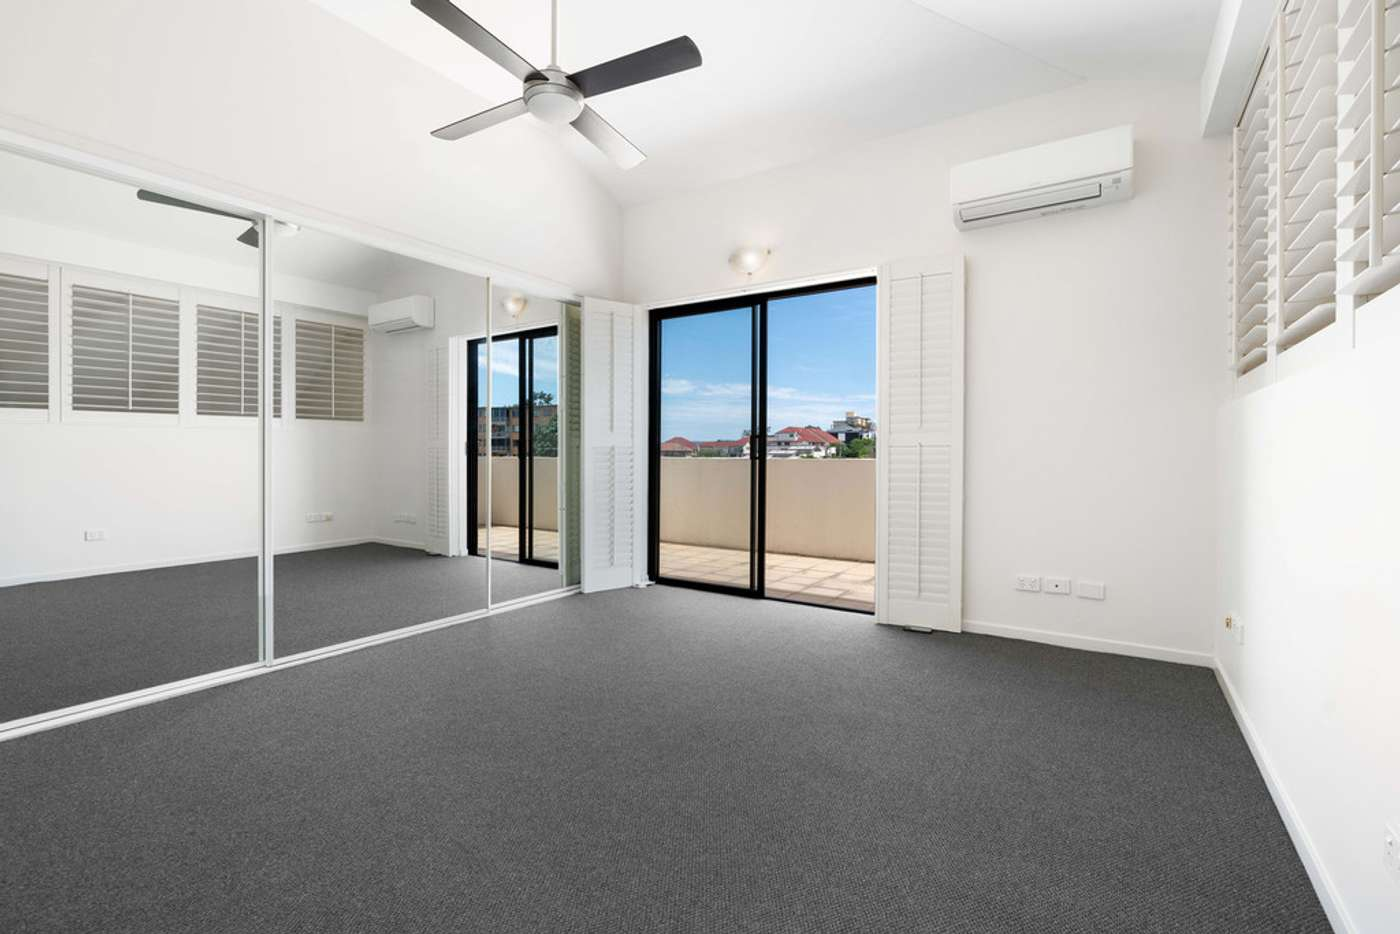 Sixth view of Homely apartment listing, 13/41 Rossiter Parade, Hamilton QLD 4007